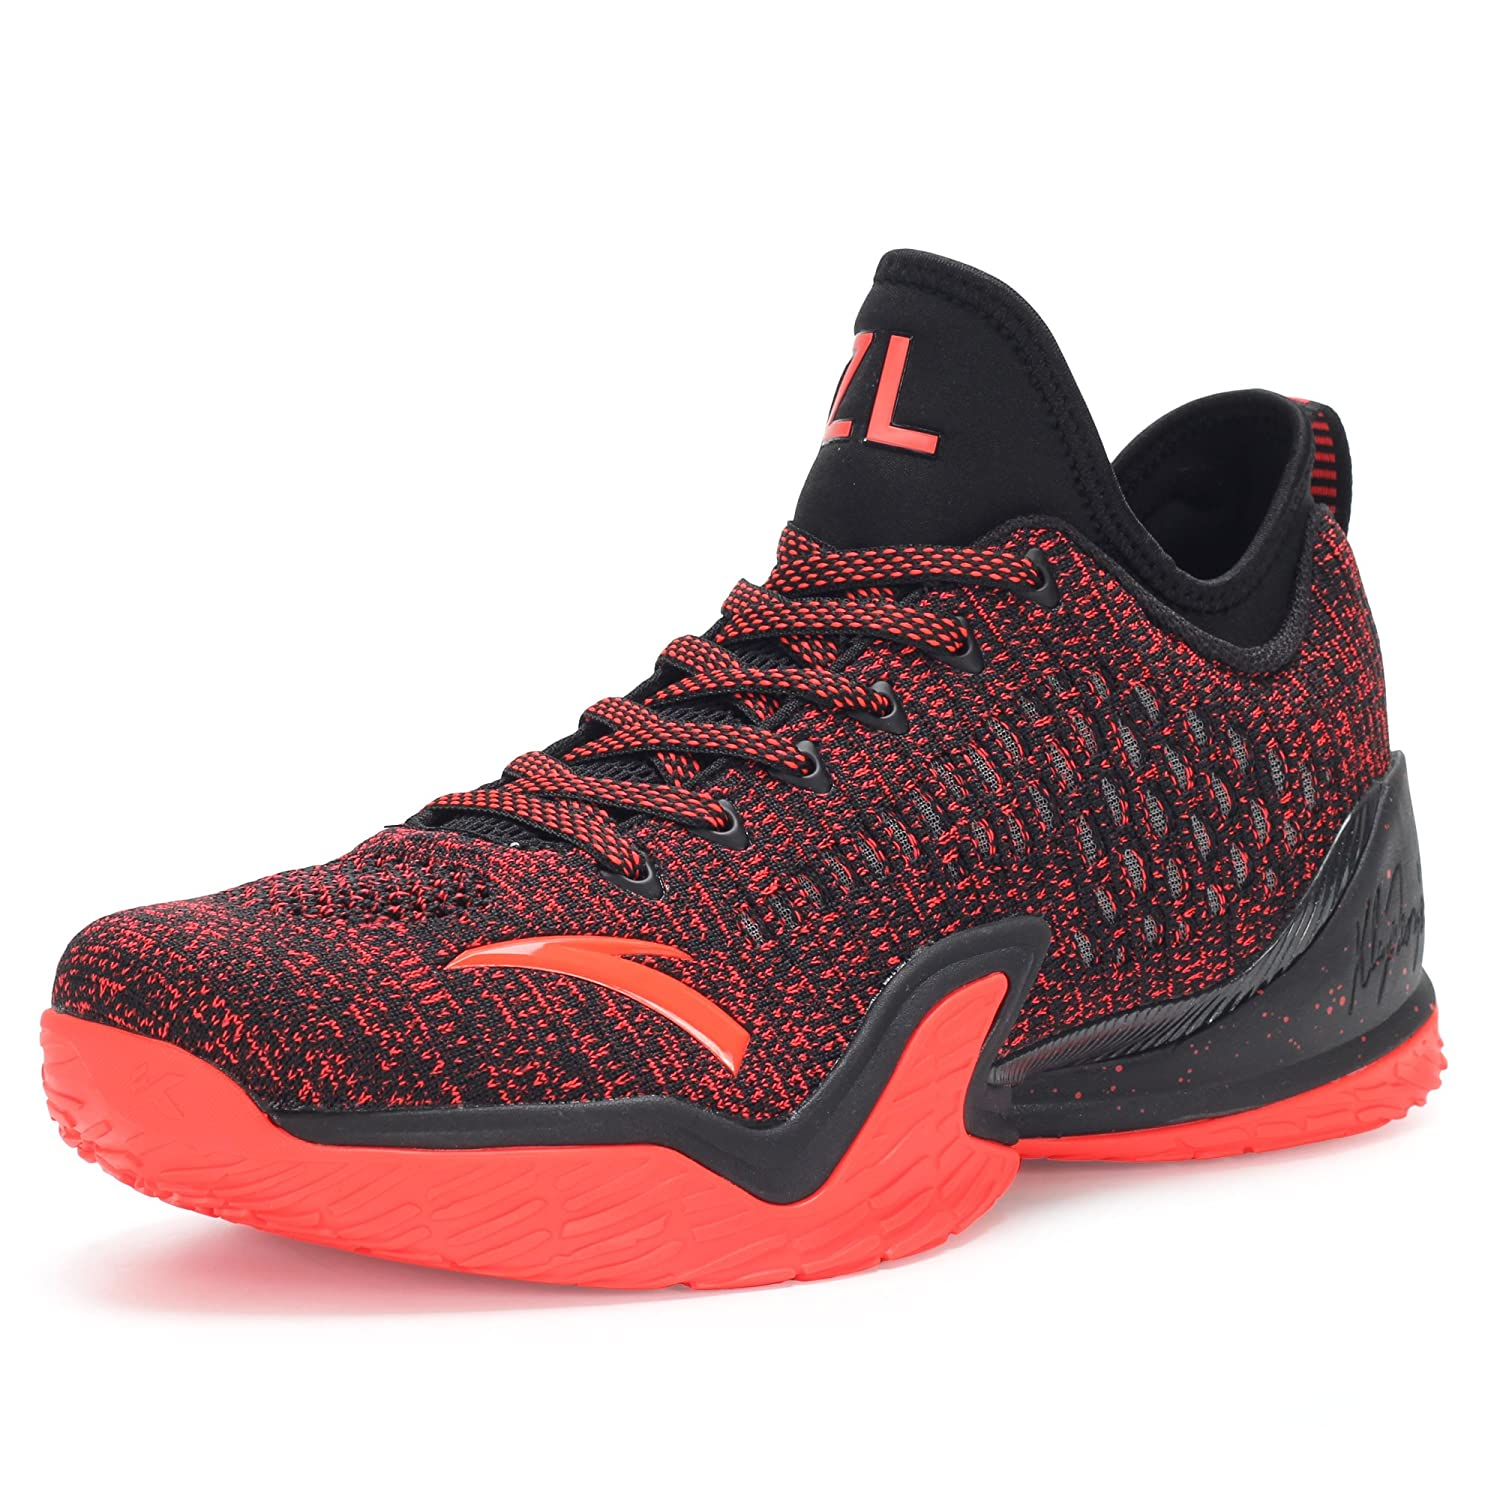 ANTA メンズ KT3 PLAYOFFS B07BK1Q37K 12 D(M) US Black/D.ruby